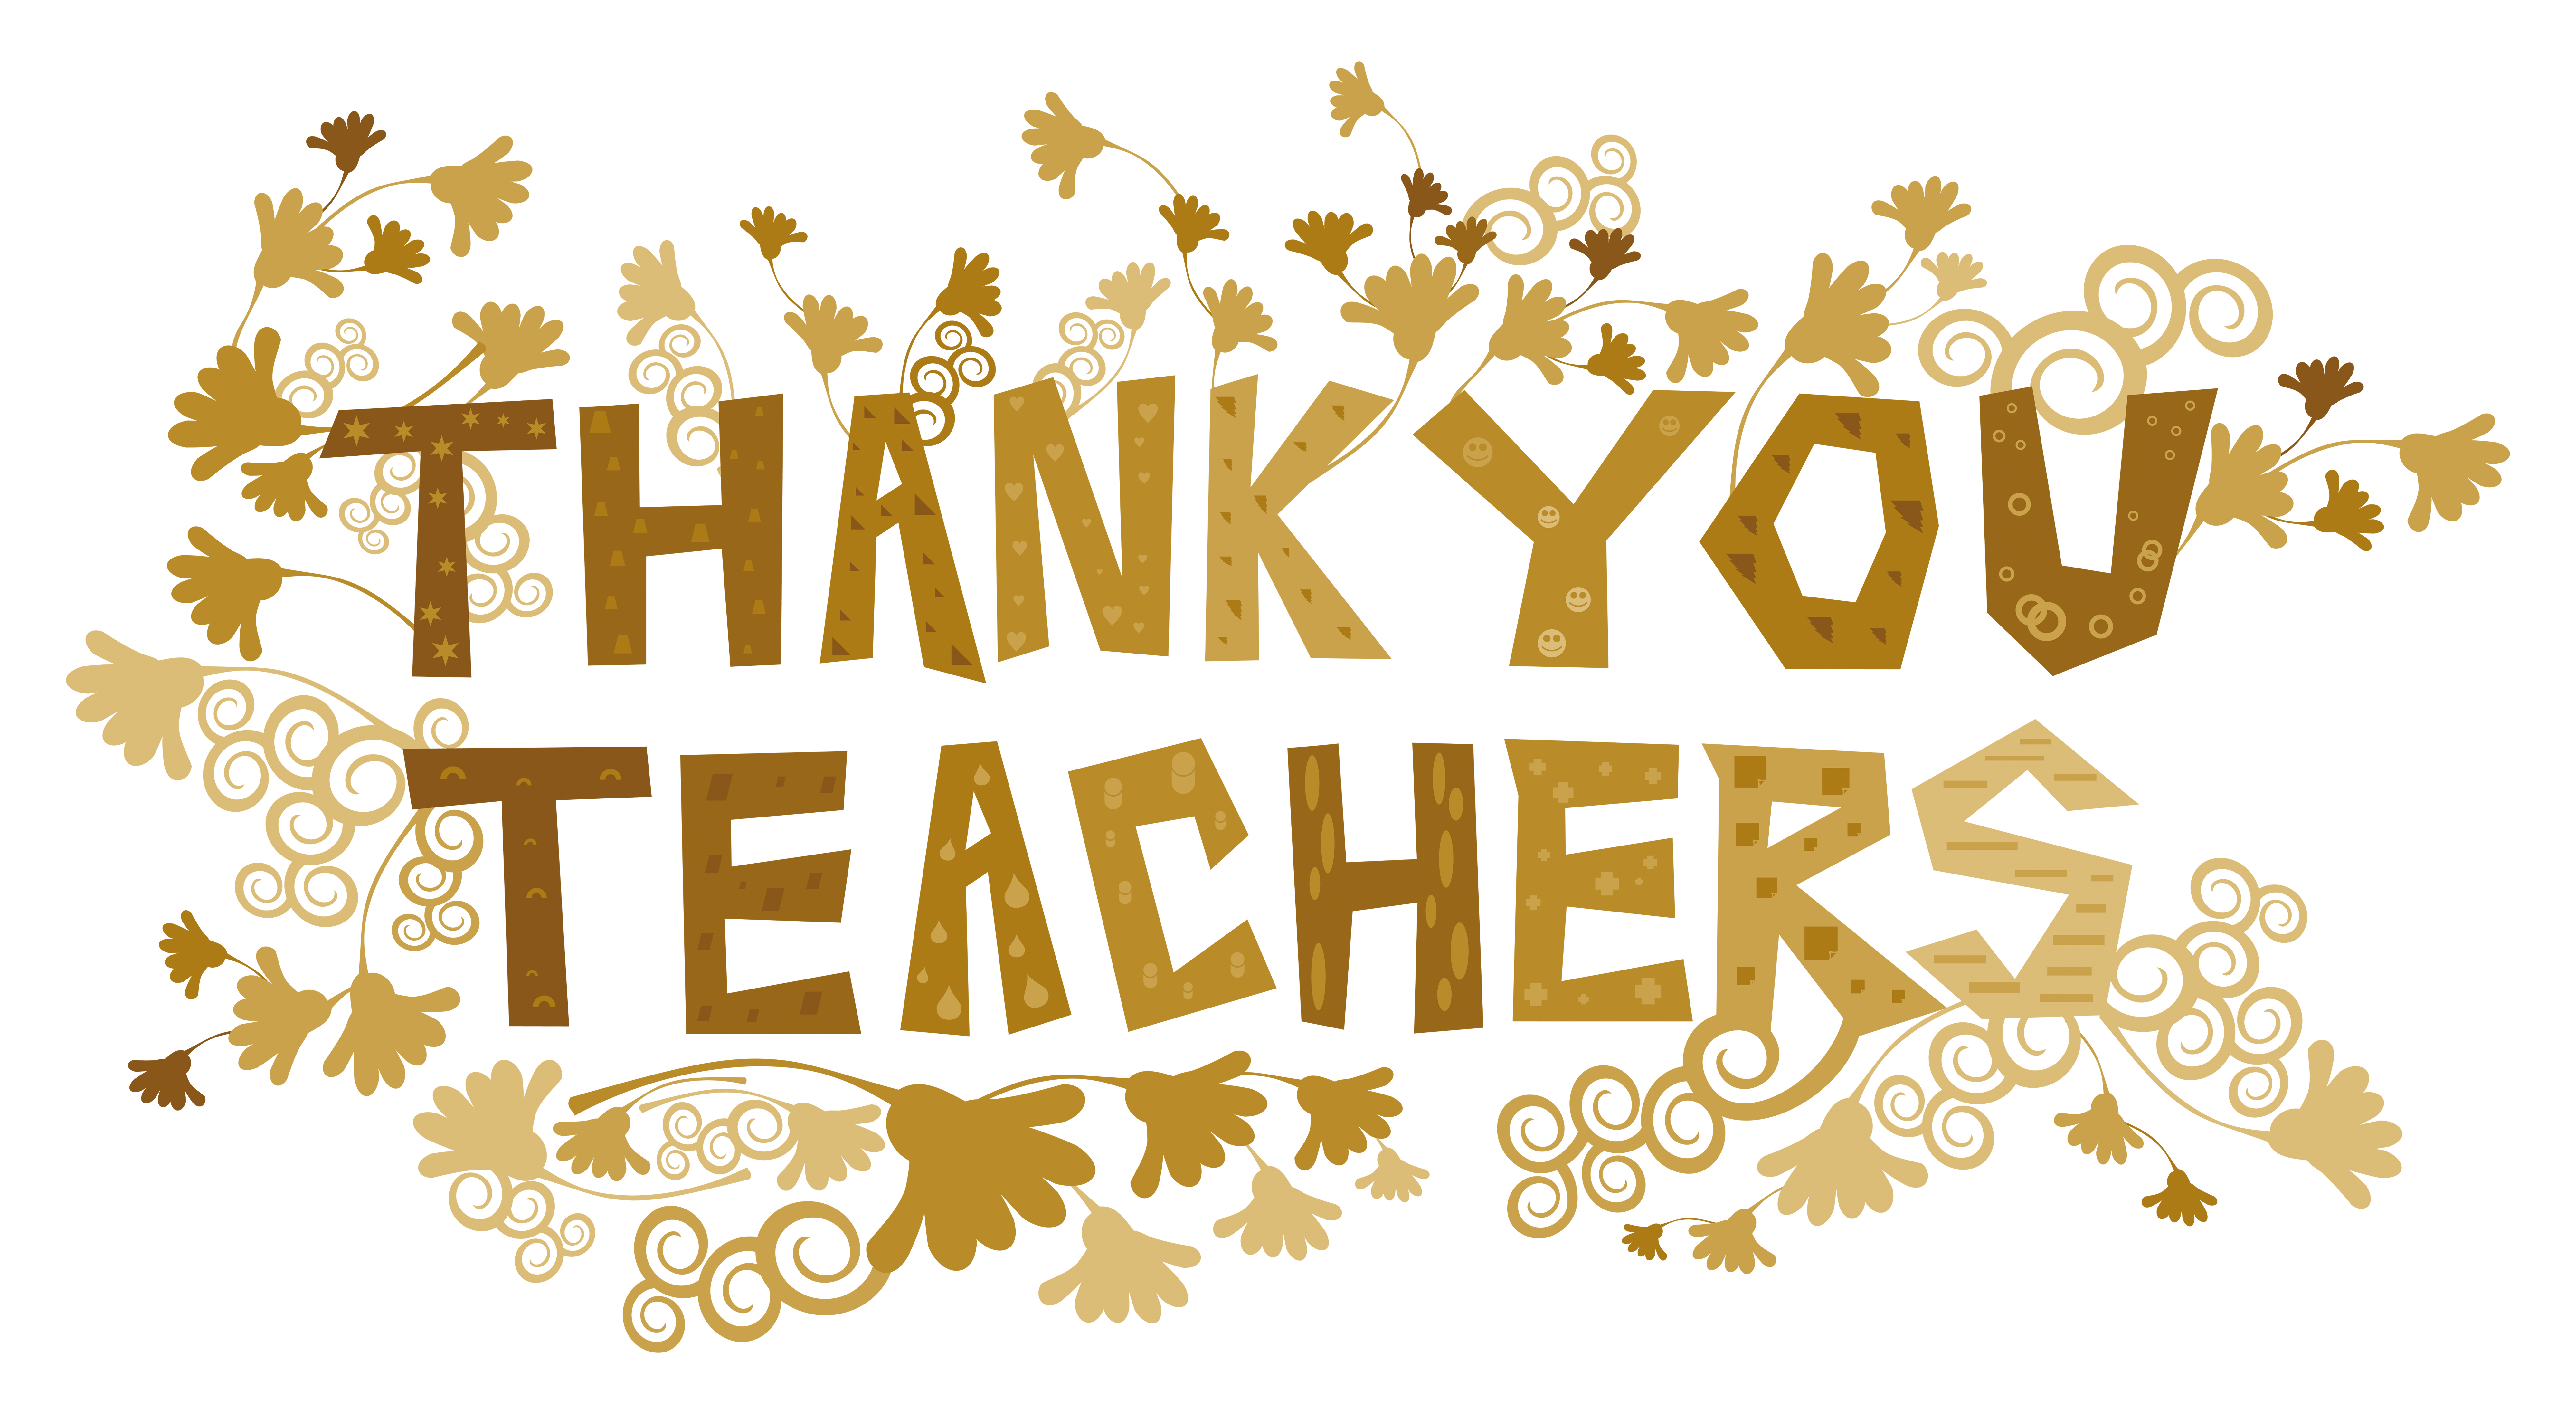 Show teachers and staff how much you appreciate them during Teacher Appreciation Week